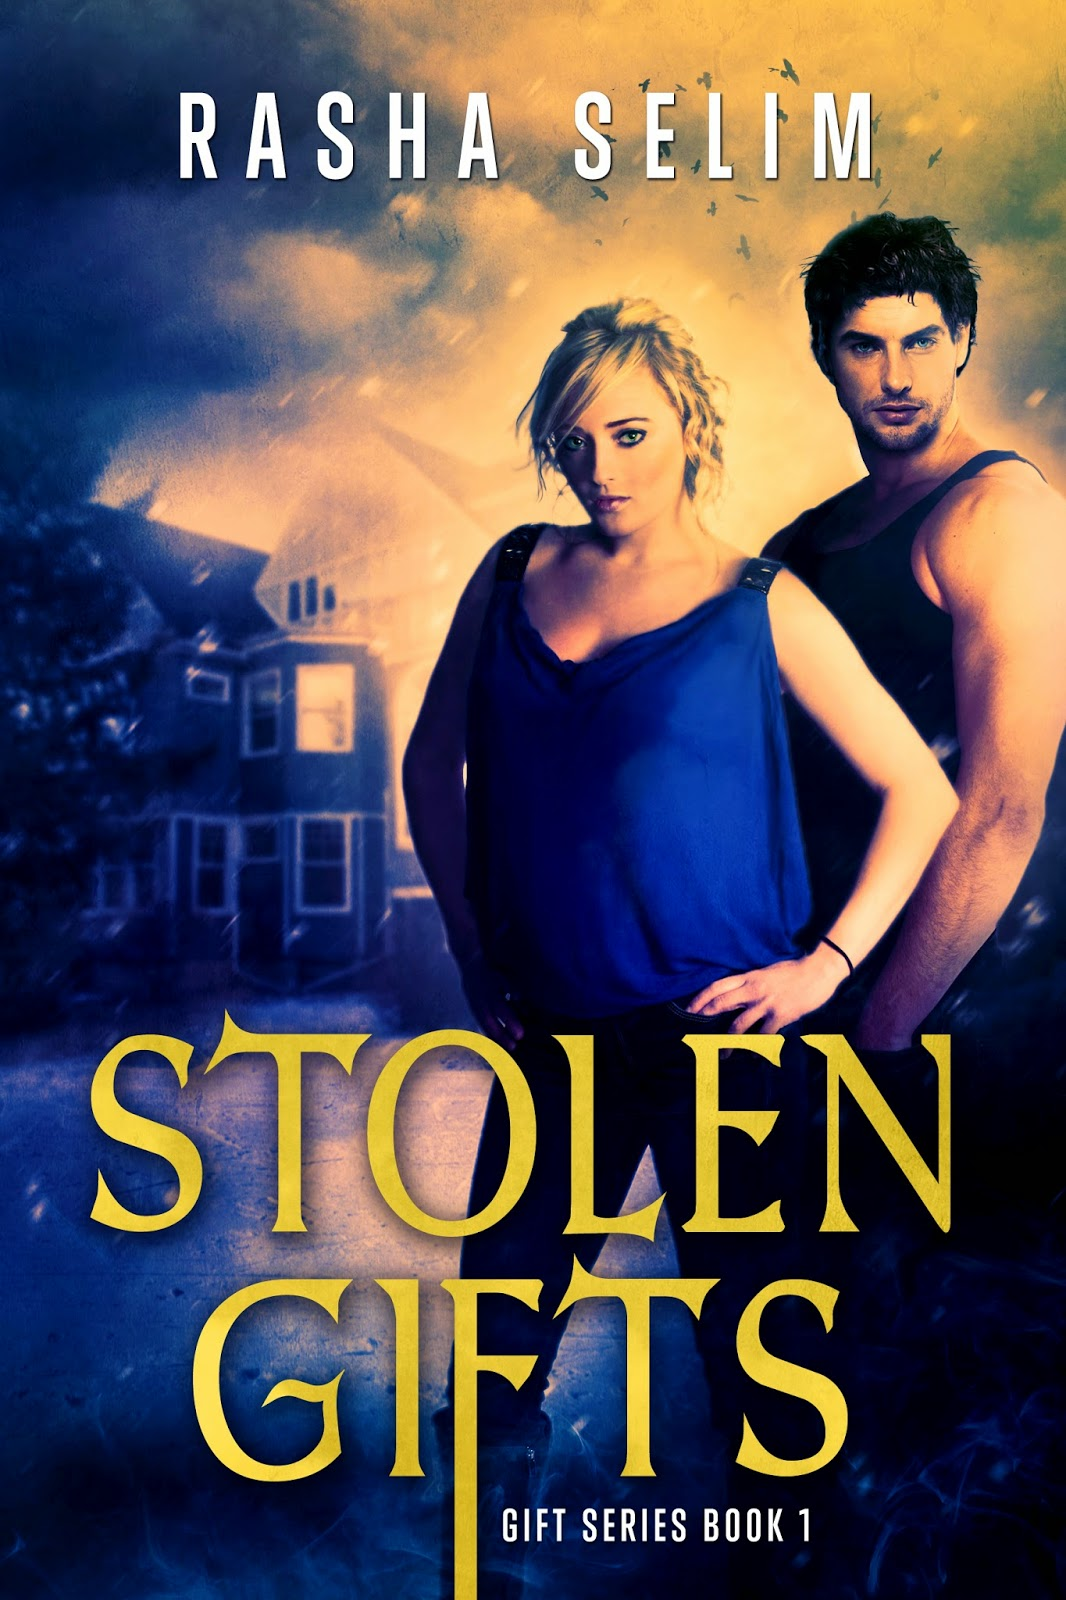 http://www.amazon.com/Stolen-Gifts-Gift-Rasha-Selim-ebook/dp/B00JCUS9C0/ref=sr_1_1?s=digital-text&ie=UTF8&qid=1401717209&sr=1-1&keywords=stolen+gifts